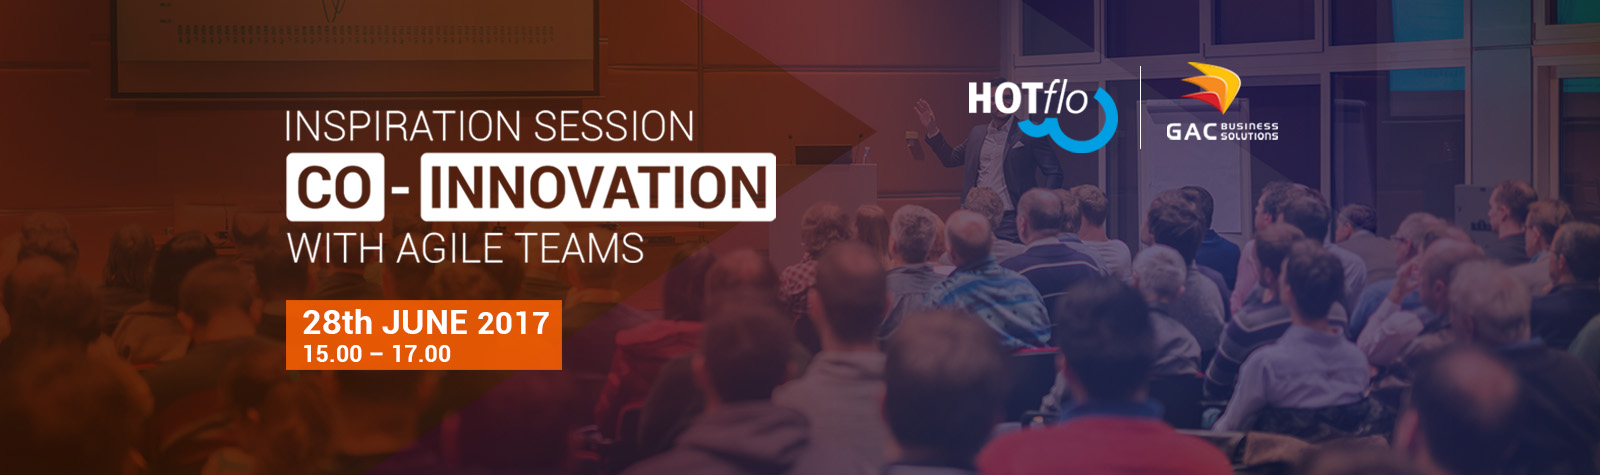 coMakeIT | Inspiration session on co-innovation with Agile teams